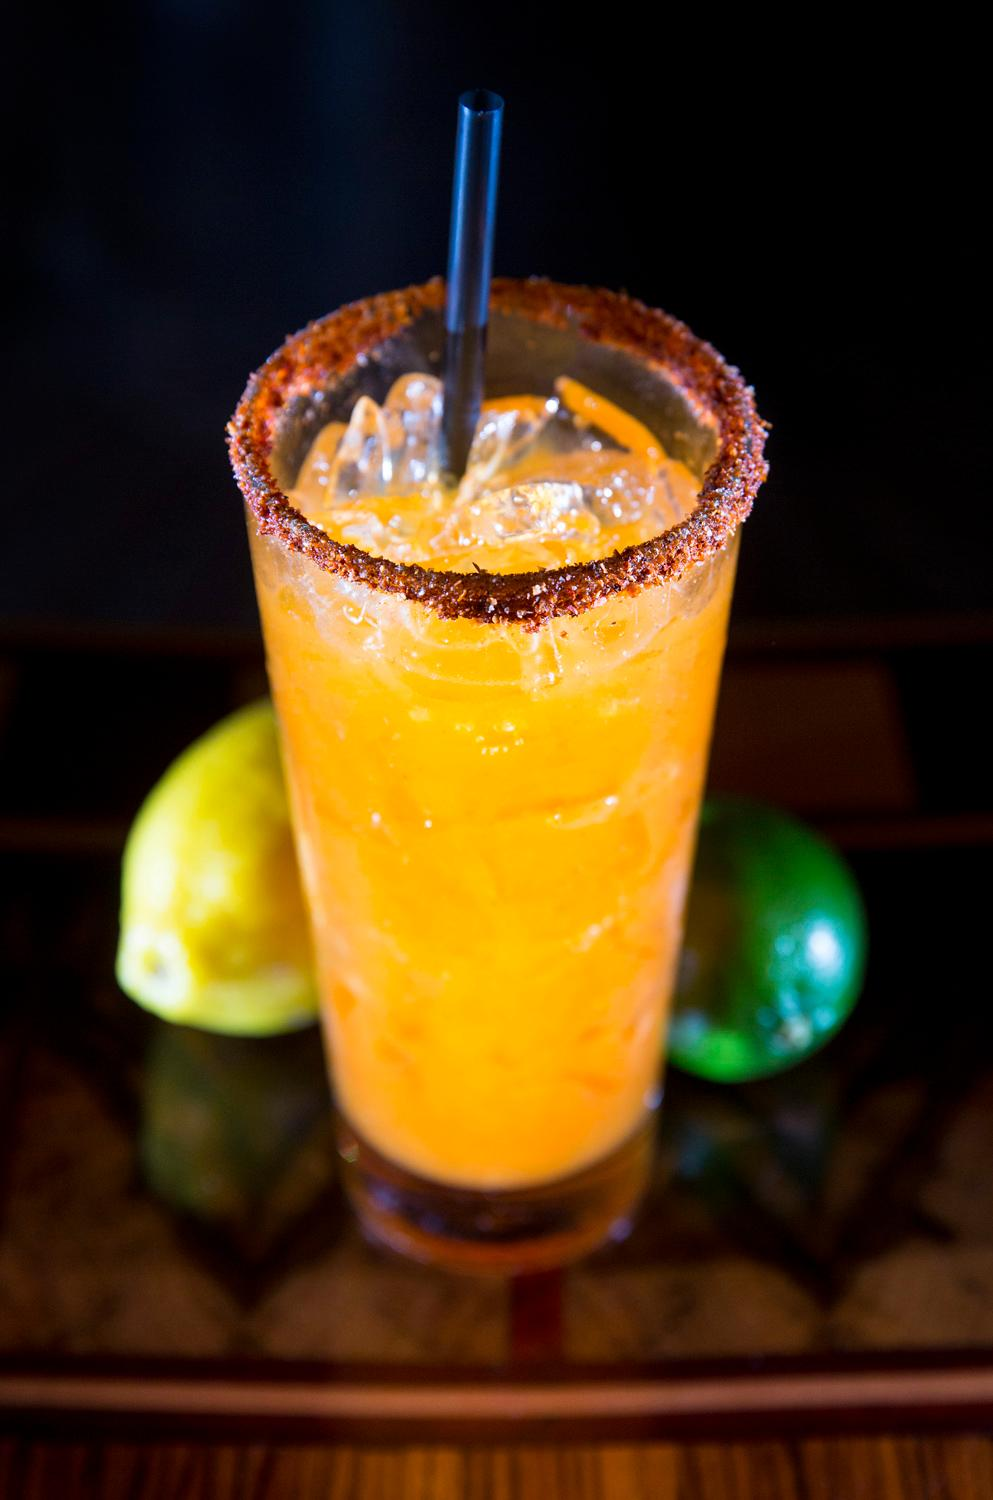 The Smokey Margarita from The Matador, made up of Monte Lobo Mezcal, triple sec, charred pineapple reduction, lime, tajin rim. (Sy Bean / Seattle Refined)